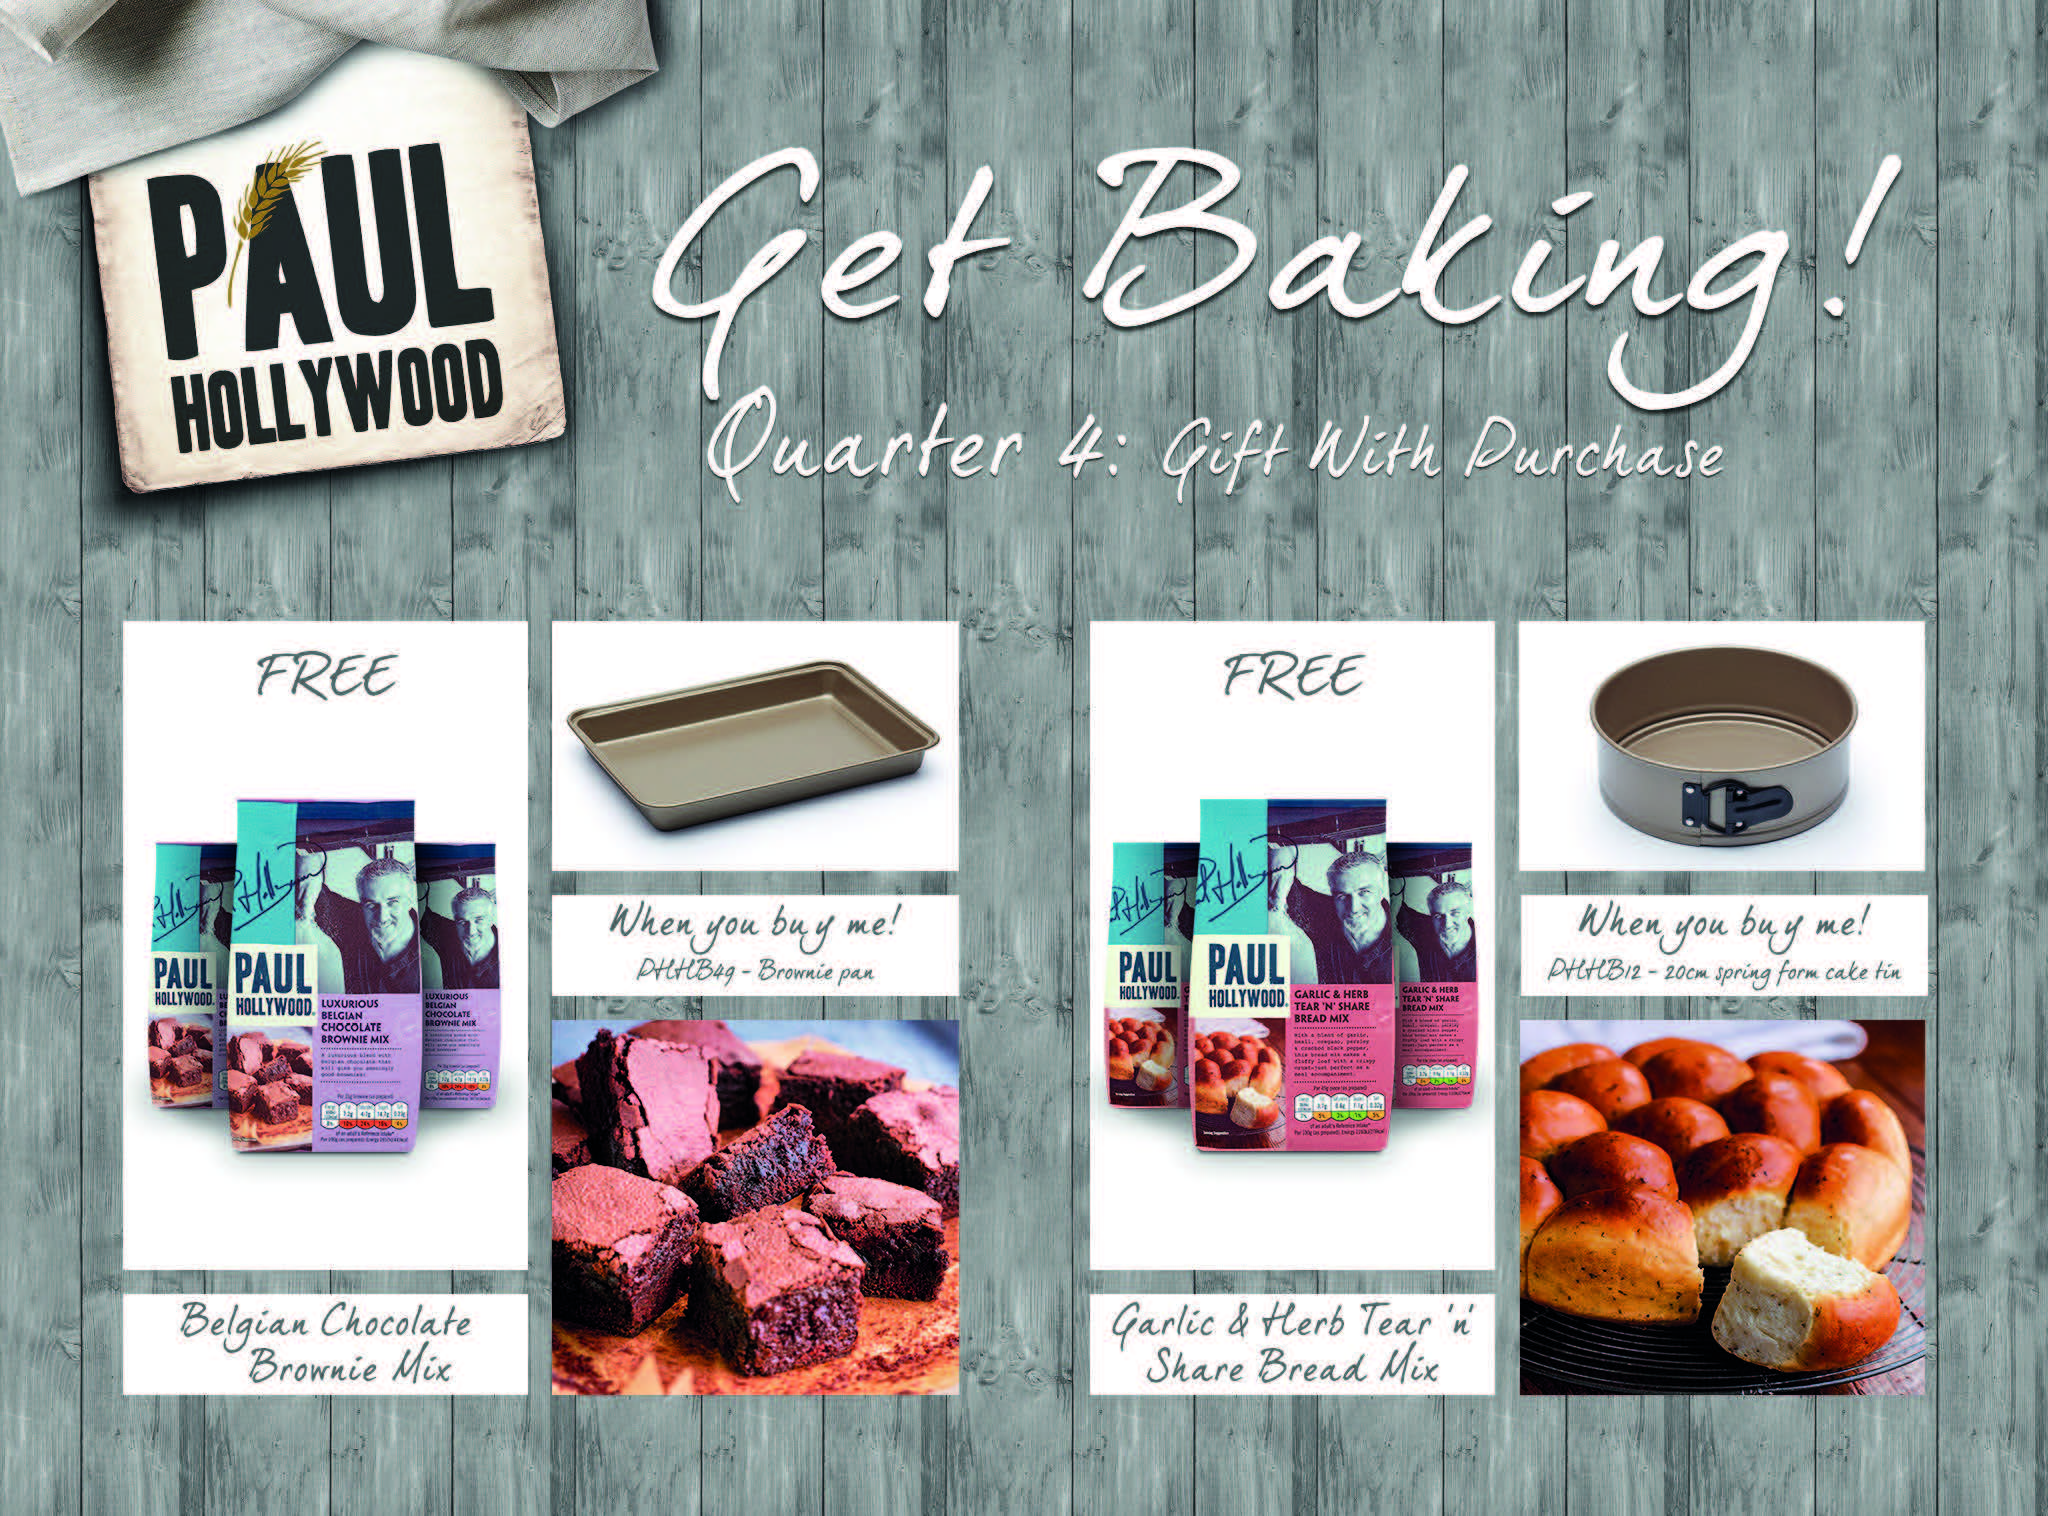 New Paul Hollywood initiative from Kitchen Craft – Housewares